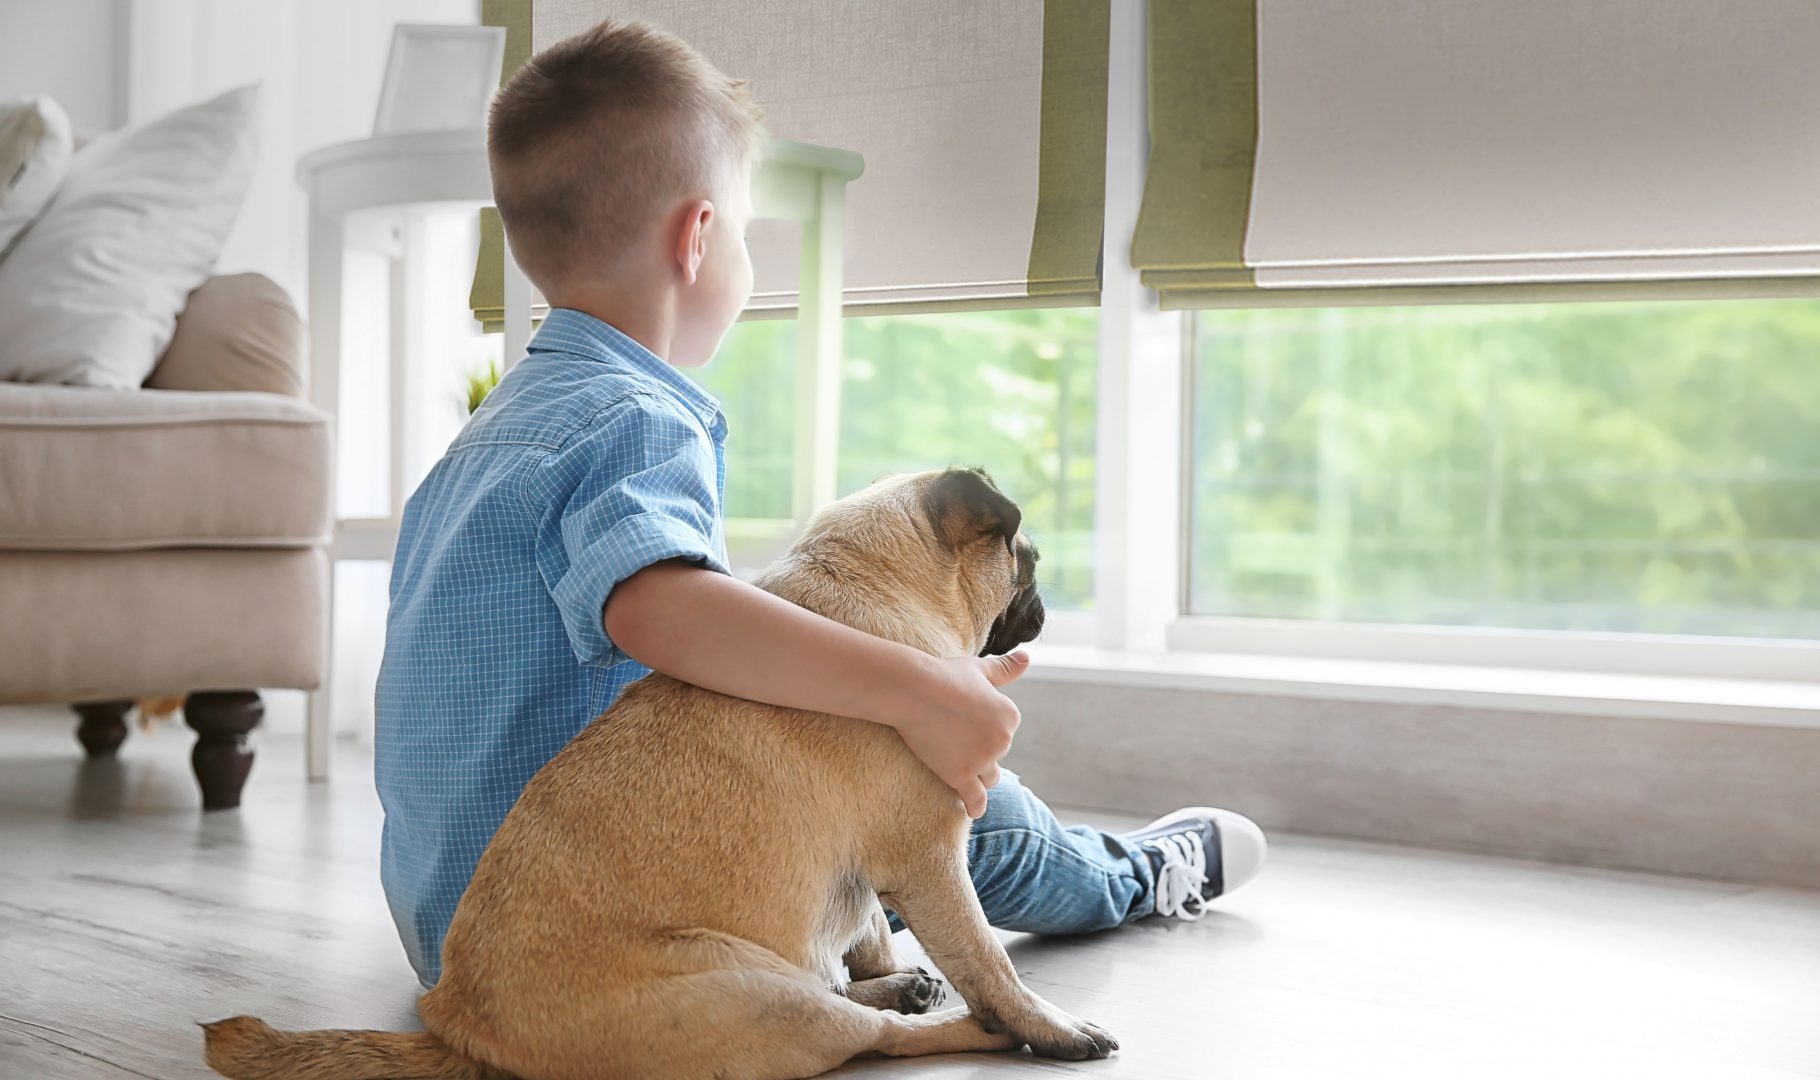 Cordless Roman shades with a boy and a dog